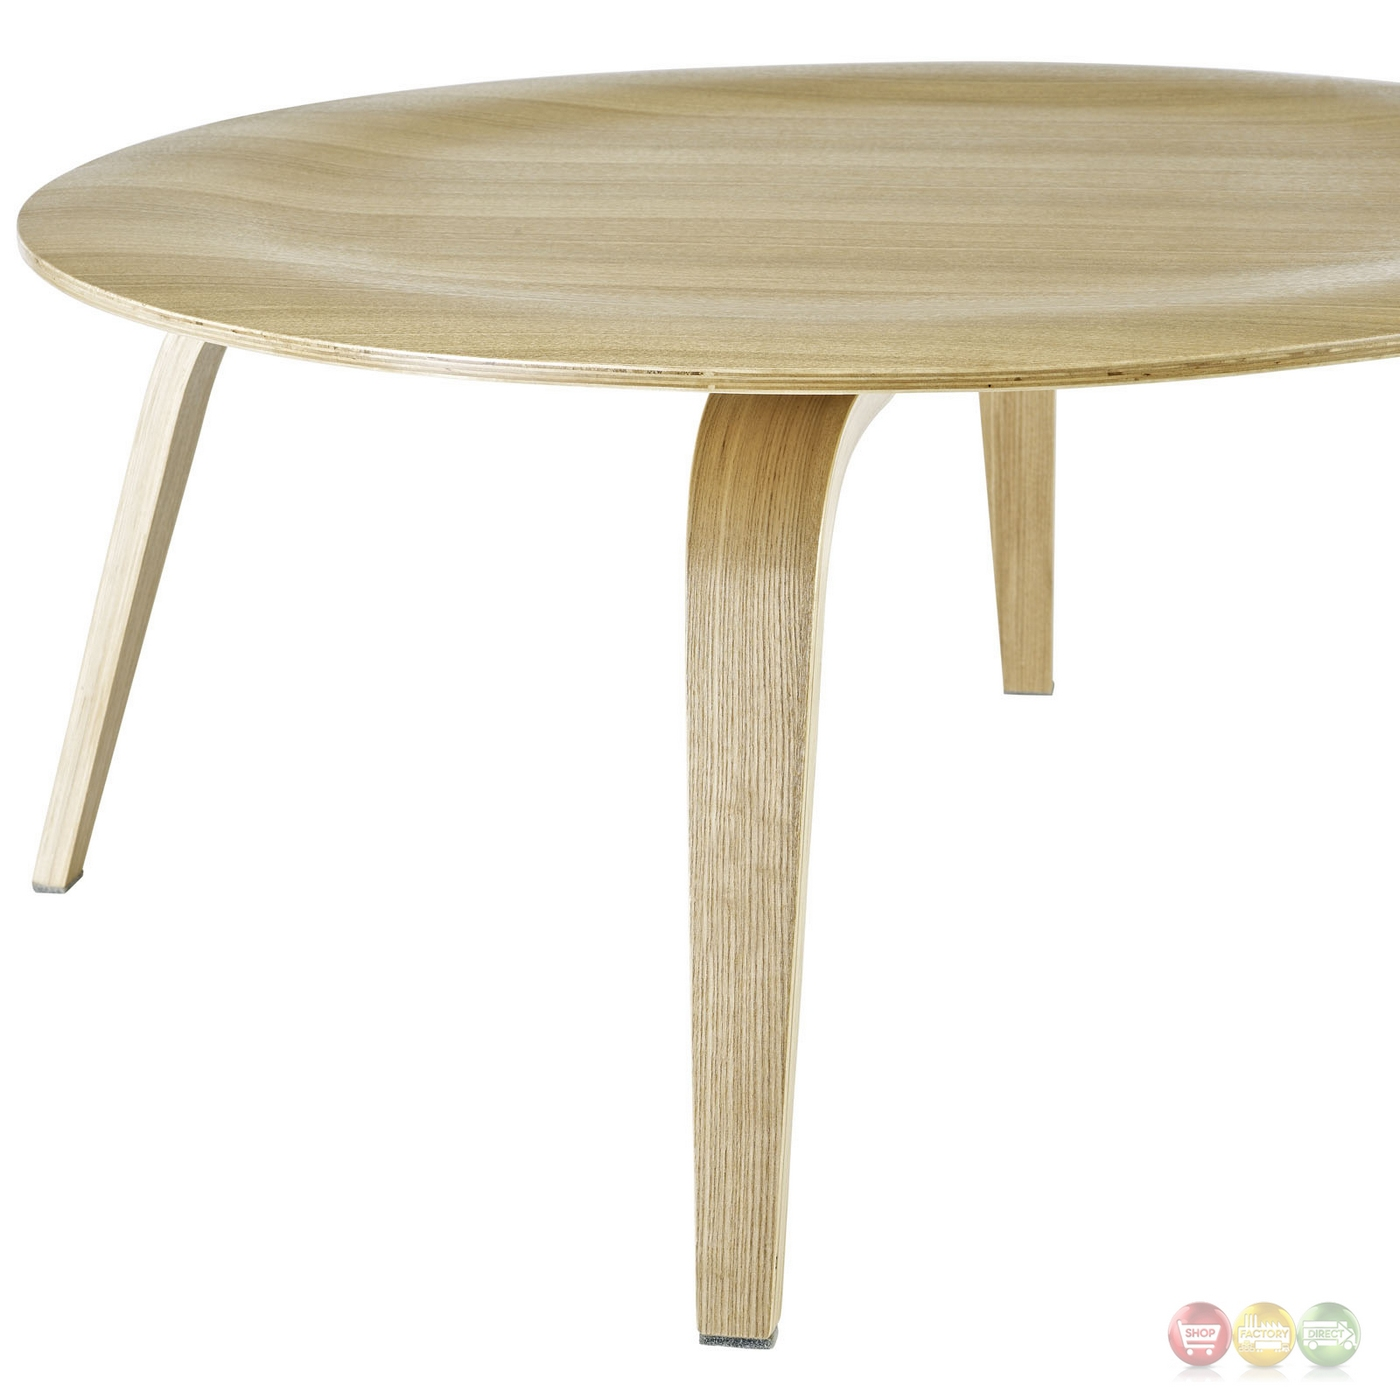 Round Coffee Table Natural Wood: Plywood Modern Wood Grain Panel Round Coffee Table, Natural